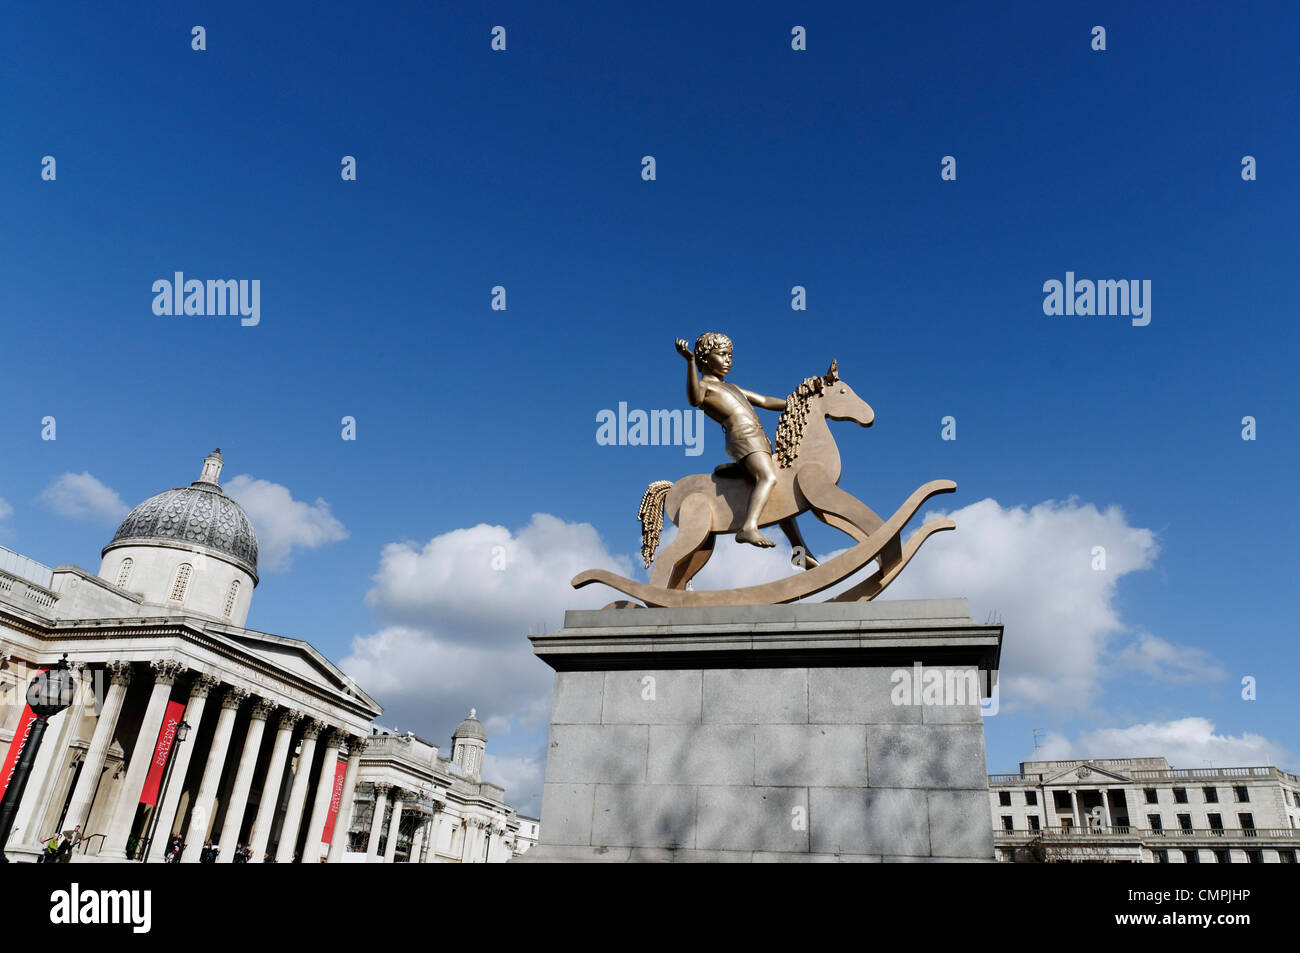 Powerless Structures Fig 101, the 2012 statue on Trafalgar Square's Fourth Plinth - Stock Image